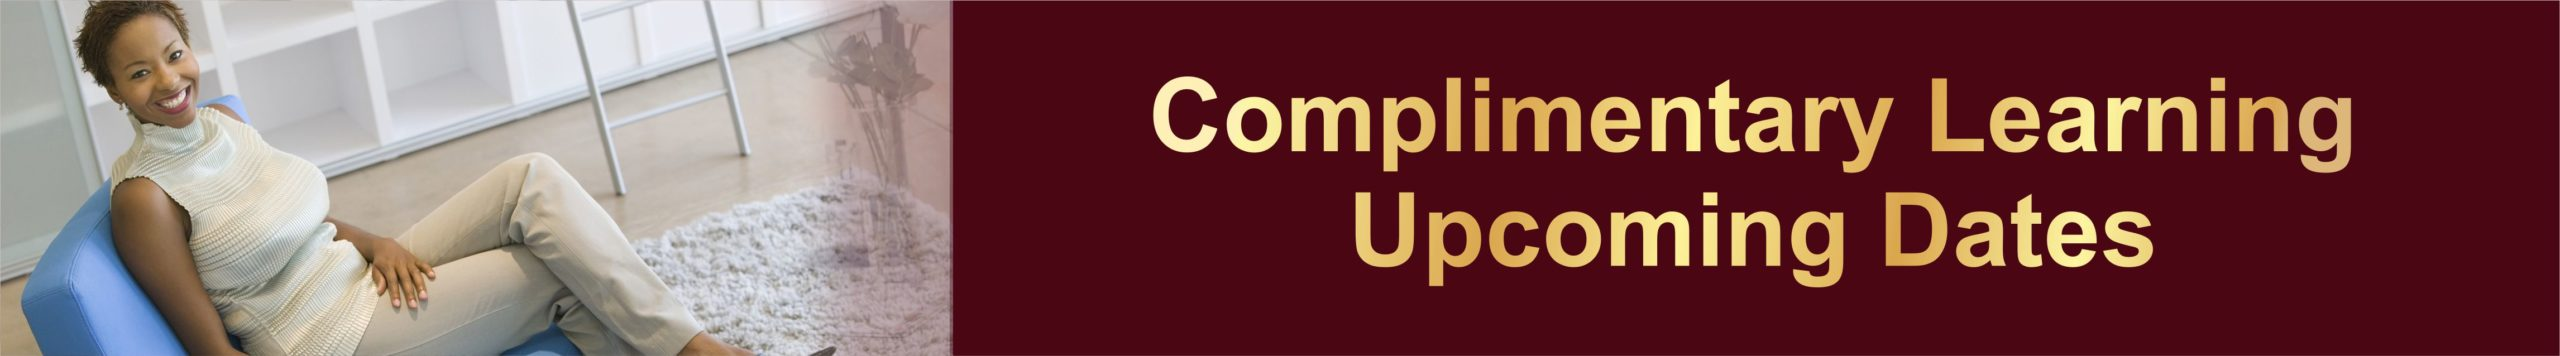 Complimentary learning - staging webinars